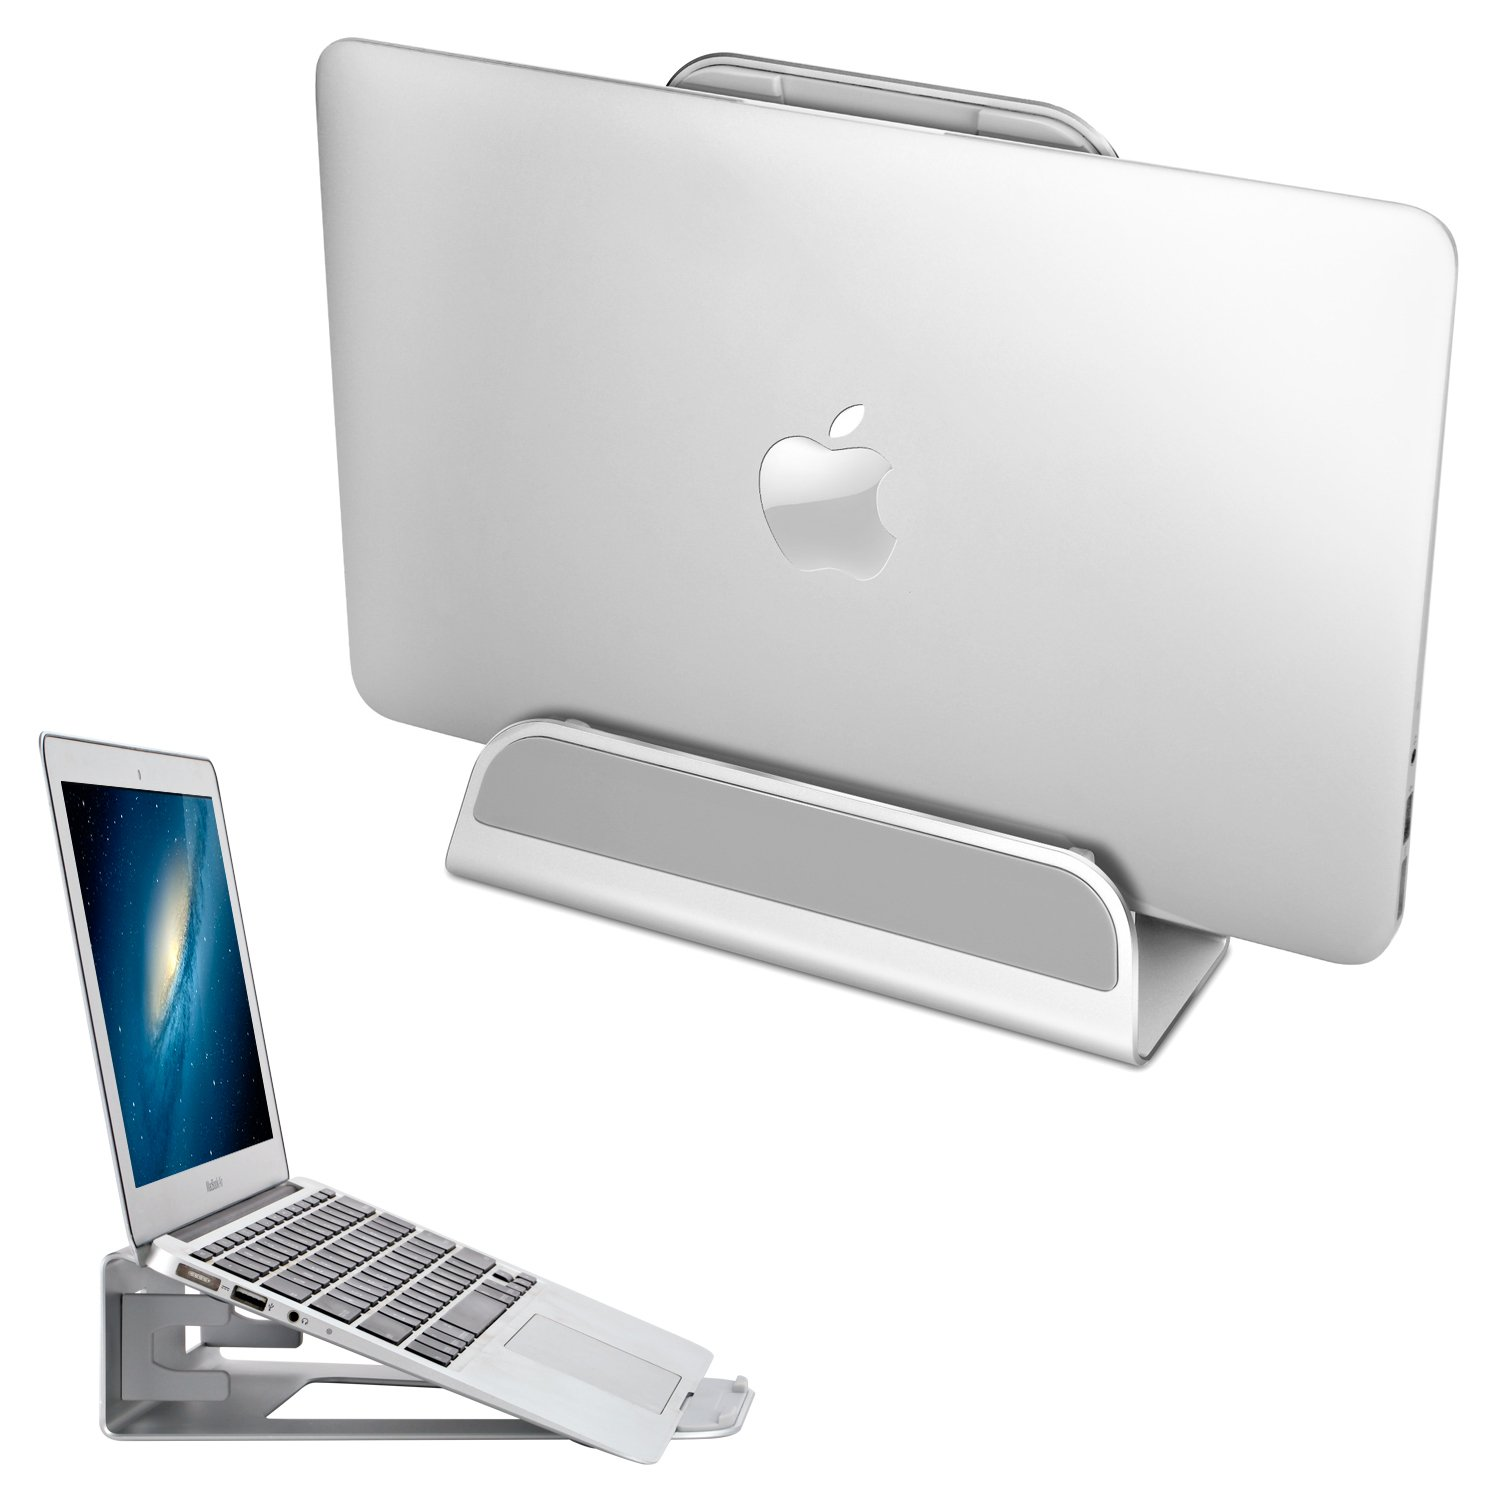 Apphome Apple MacBook Pro/Air - 2 in 1 Laptop Stand